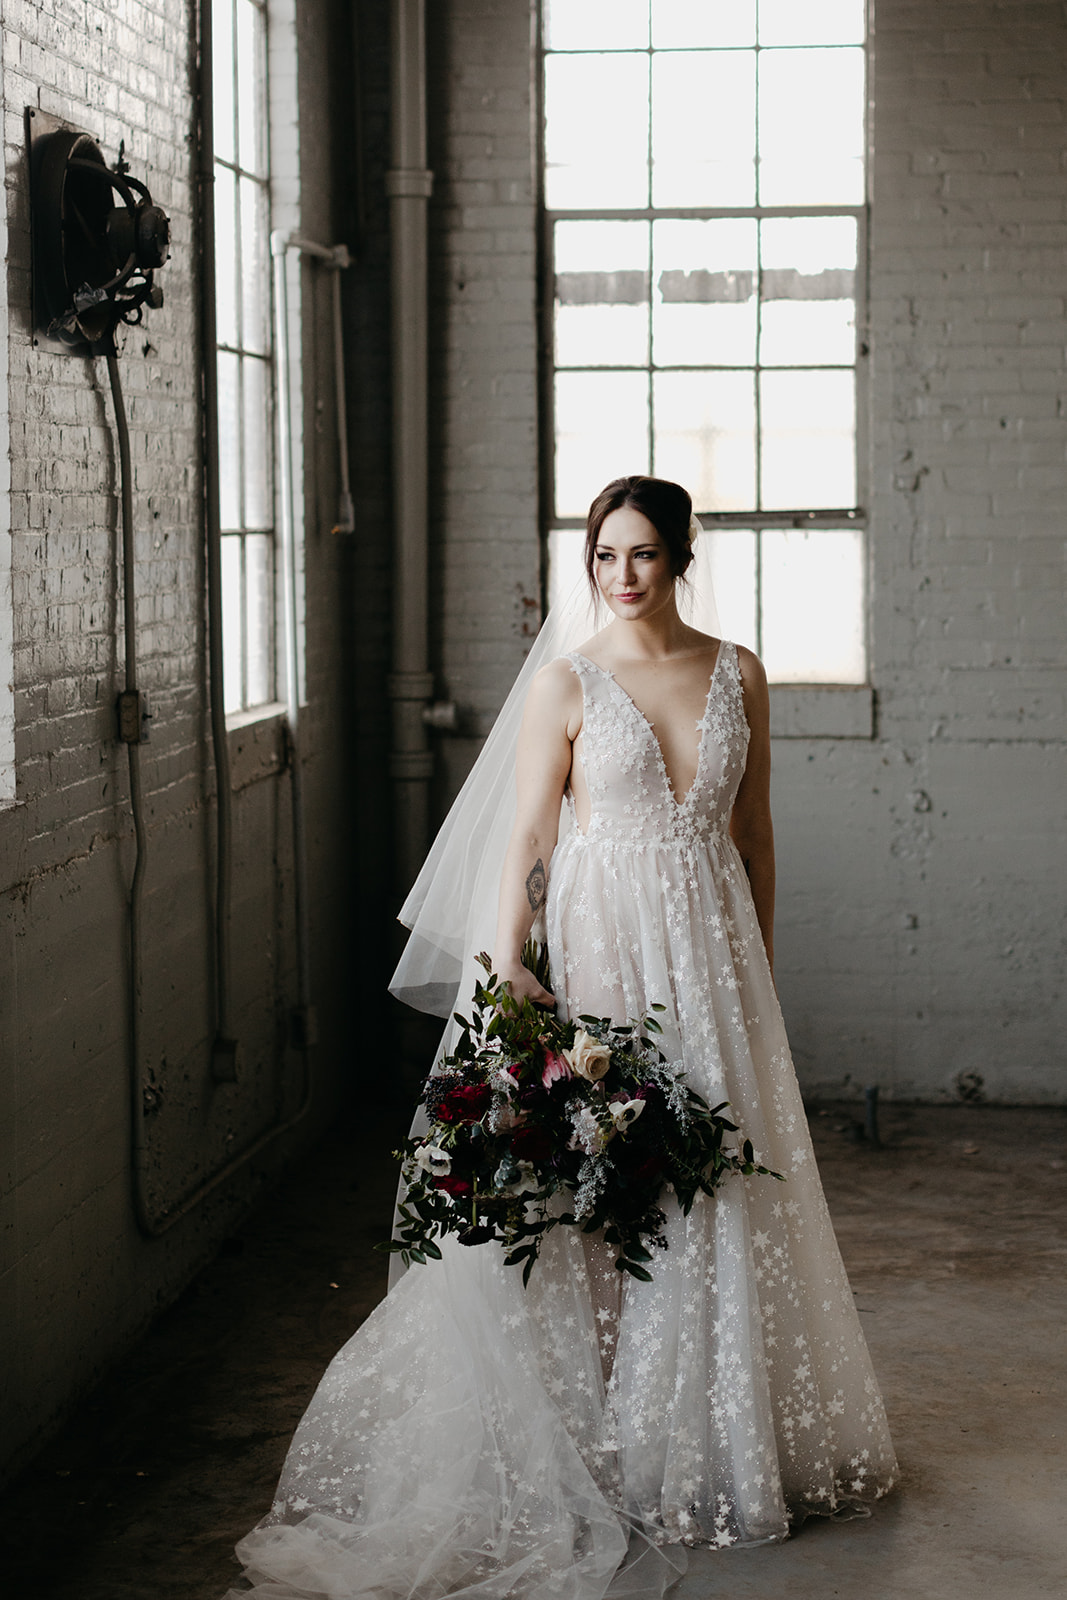 Starry wedding dress with an untamed, airy bridal bouquet with garden roses, ranunculus, and anemones in hues of burgundy and jewel tones.